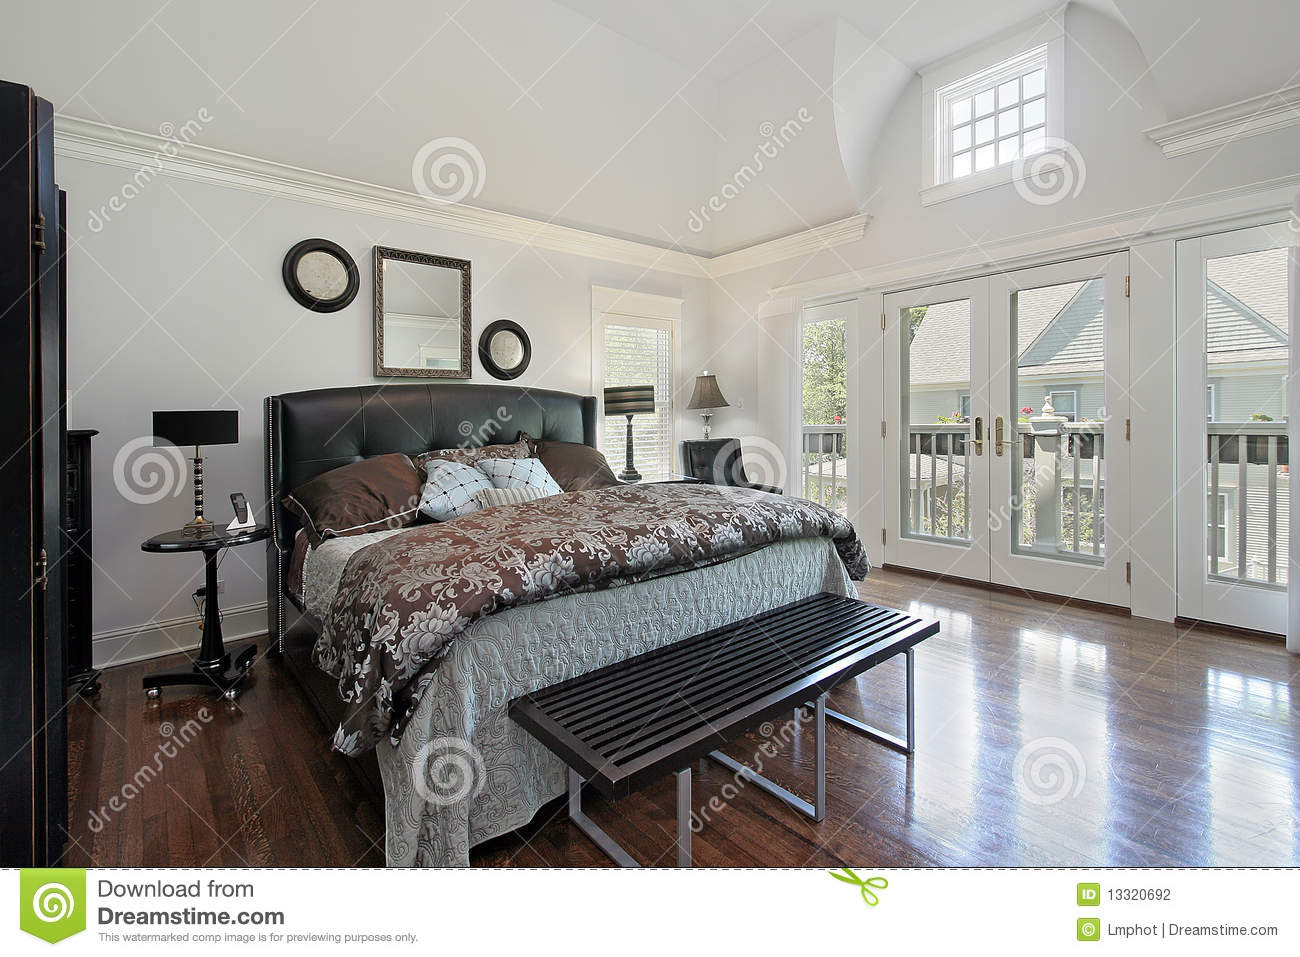 Master bedroom in luxury home with balcony stock photo for Home bedroom image